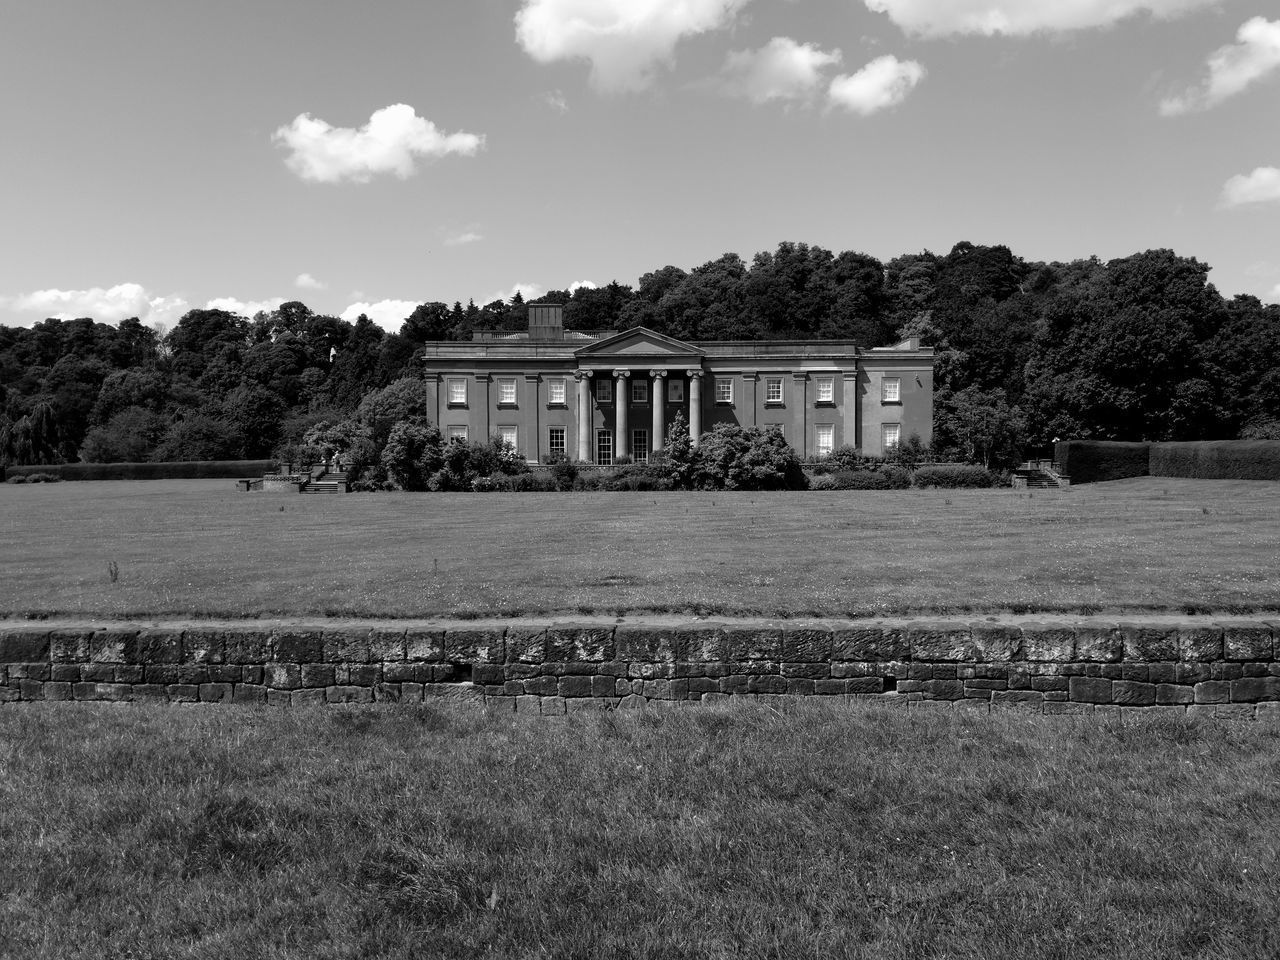 Architecture Built Structure Building Exterior History Outdoors Tree Sky No People Day Himley Hall Park Dudley